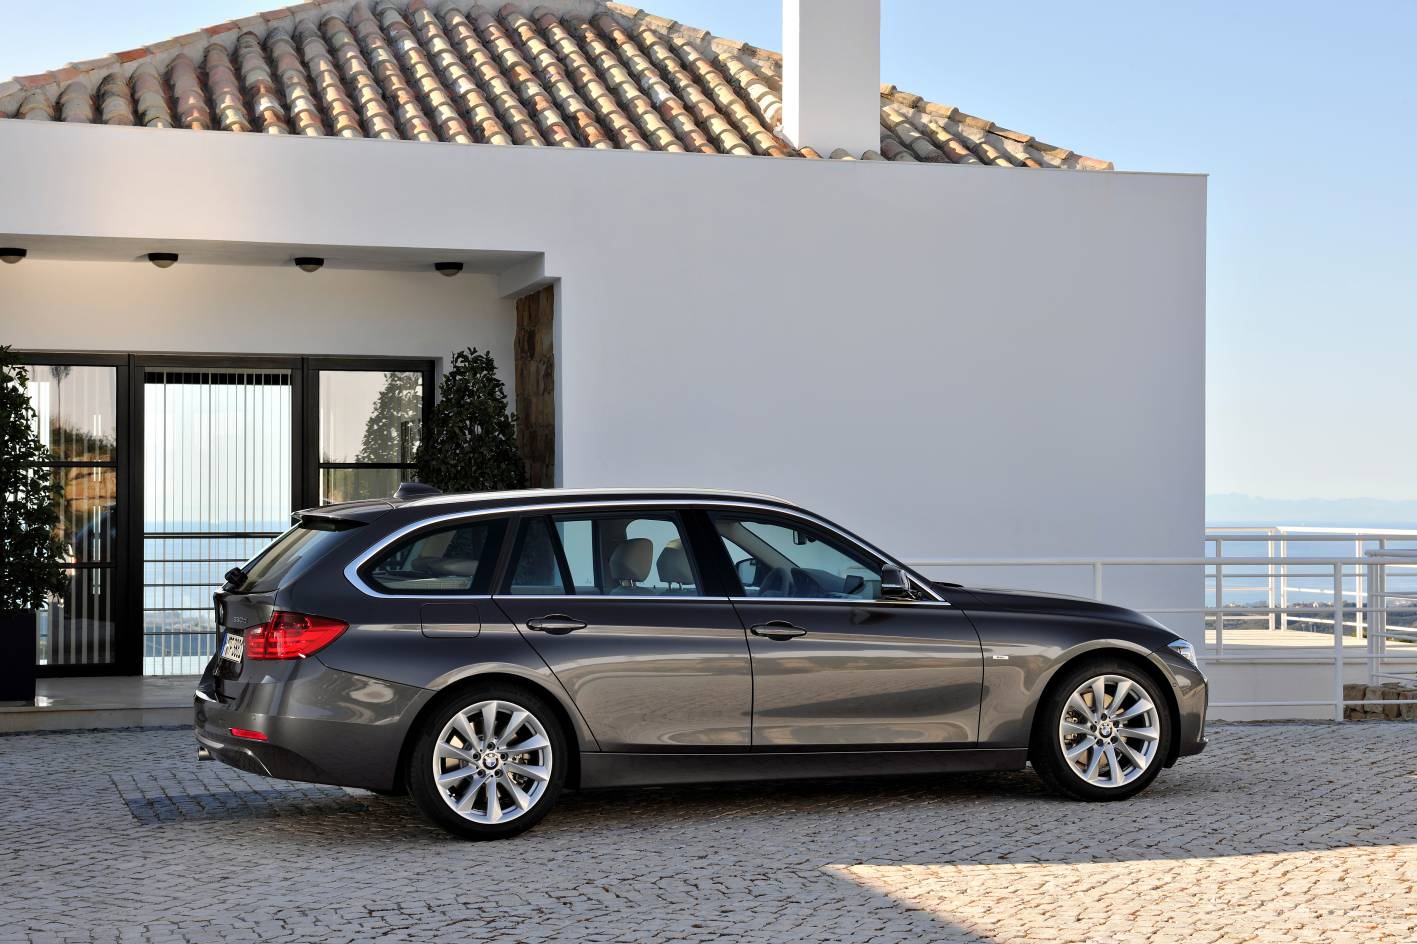 f31 bmw 3 series touring 3. Black Bedroom Furniture Sets. Home Design Ideas